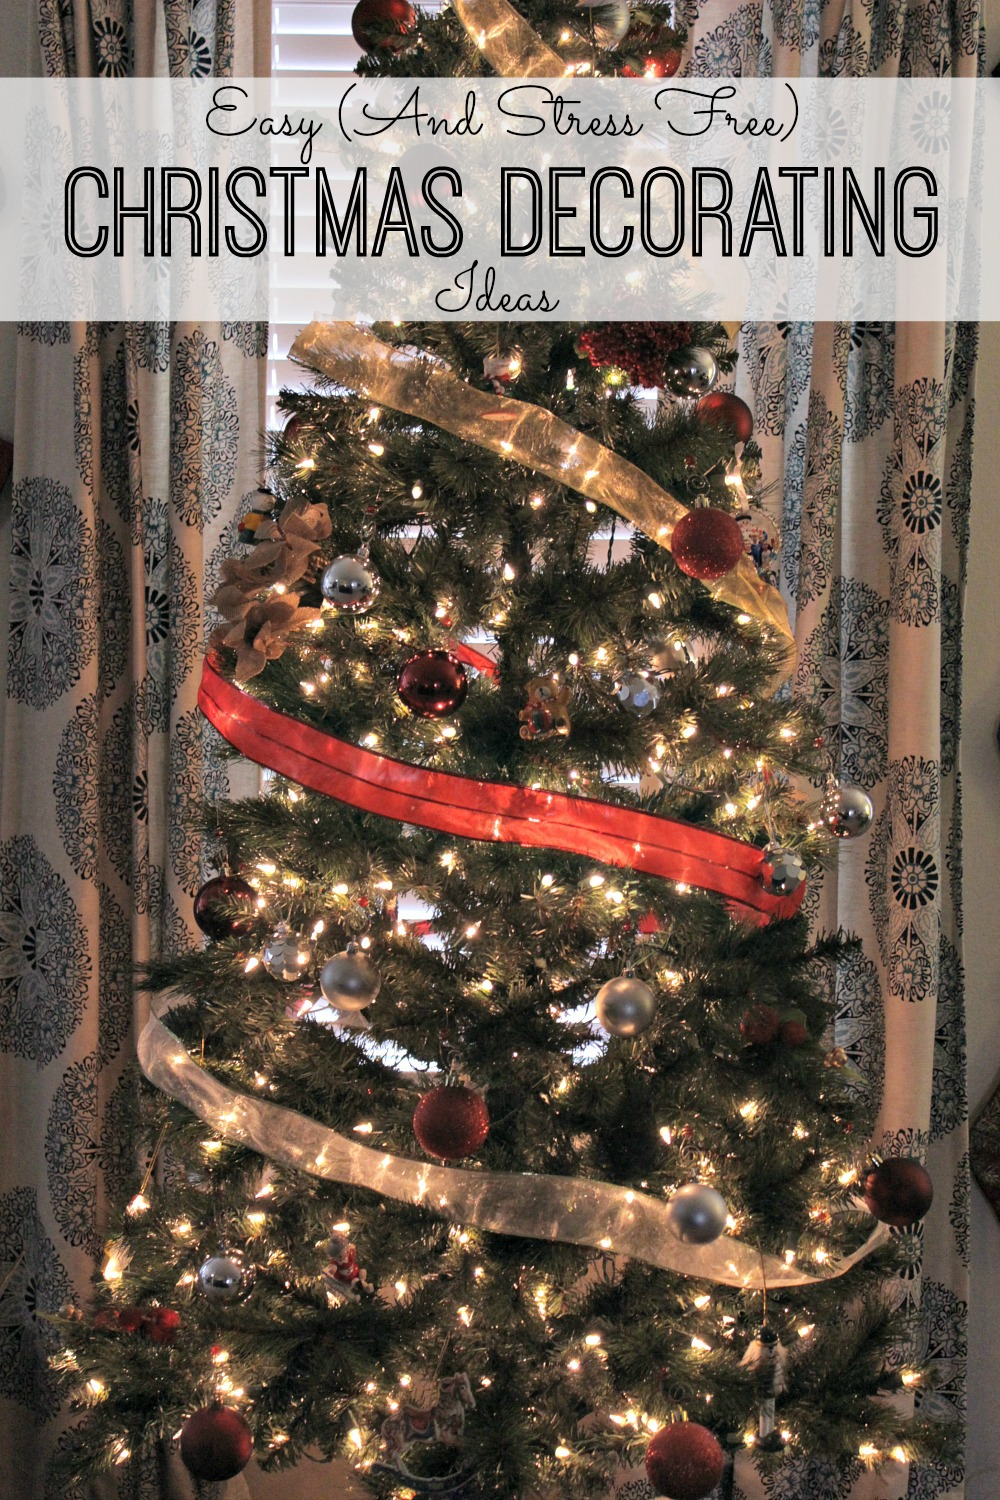 dollar tree easy christmas decorating ideas 20 - Dollar Tree Christmas Decorating Ideas